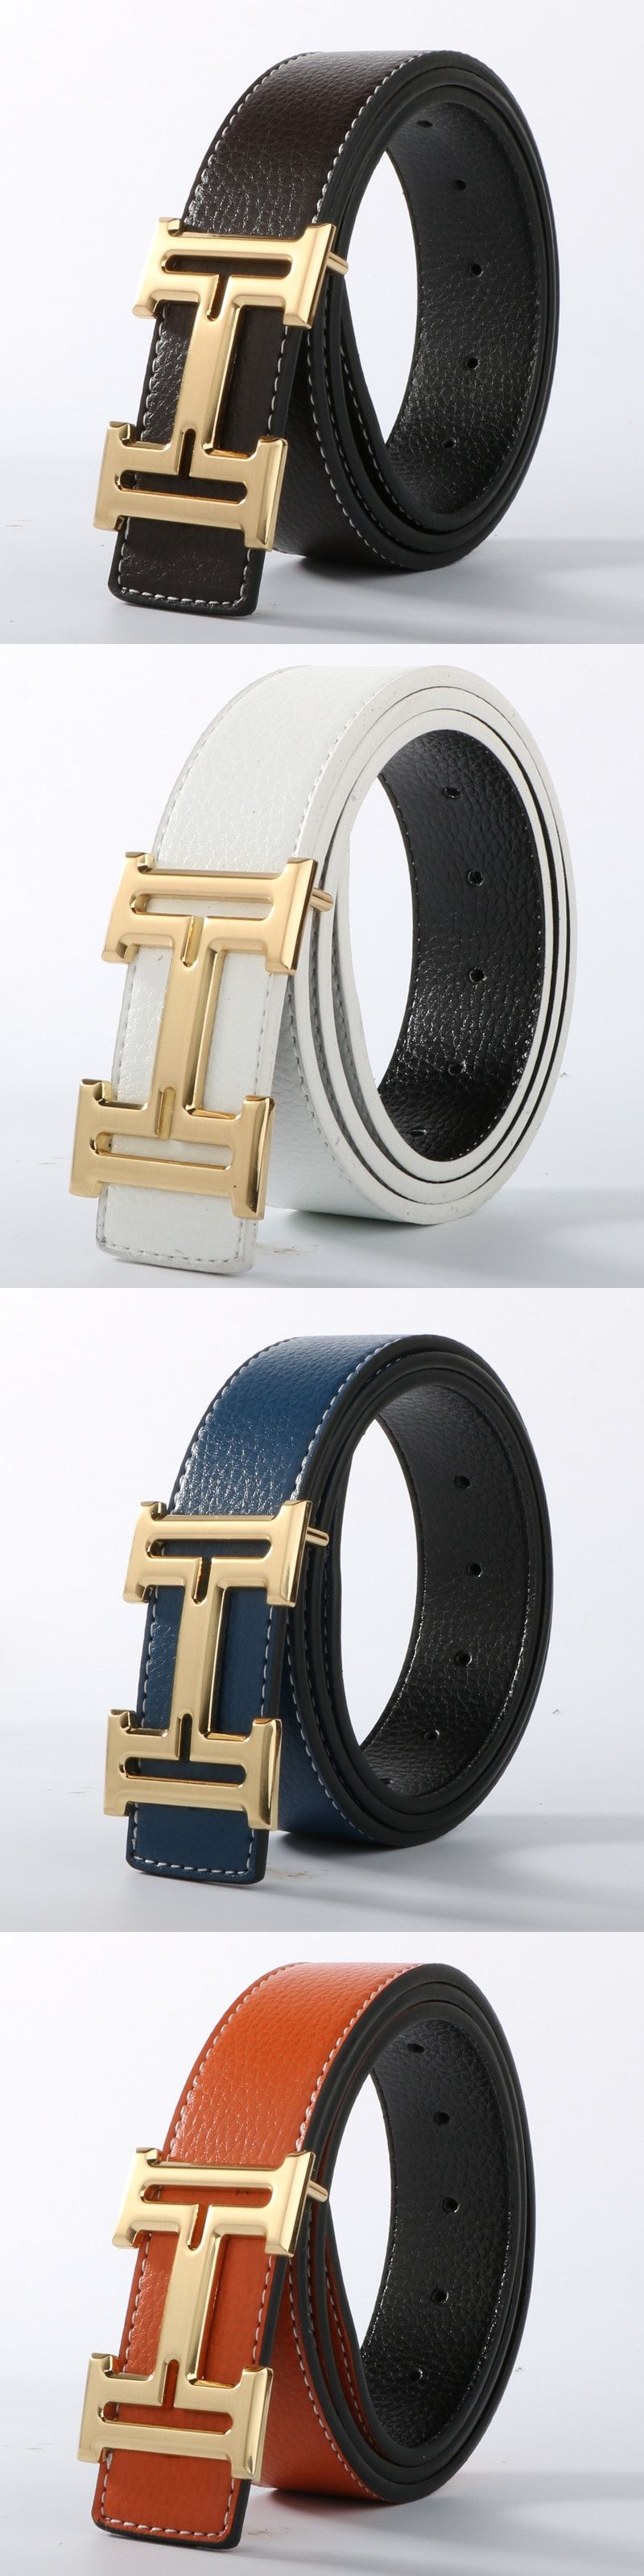 Brand ceinture mens Luxury belt belts for Women genuine leather Belts for  men designer belts men 033d64480a7